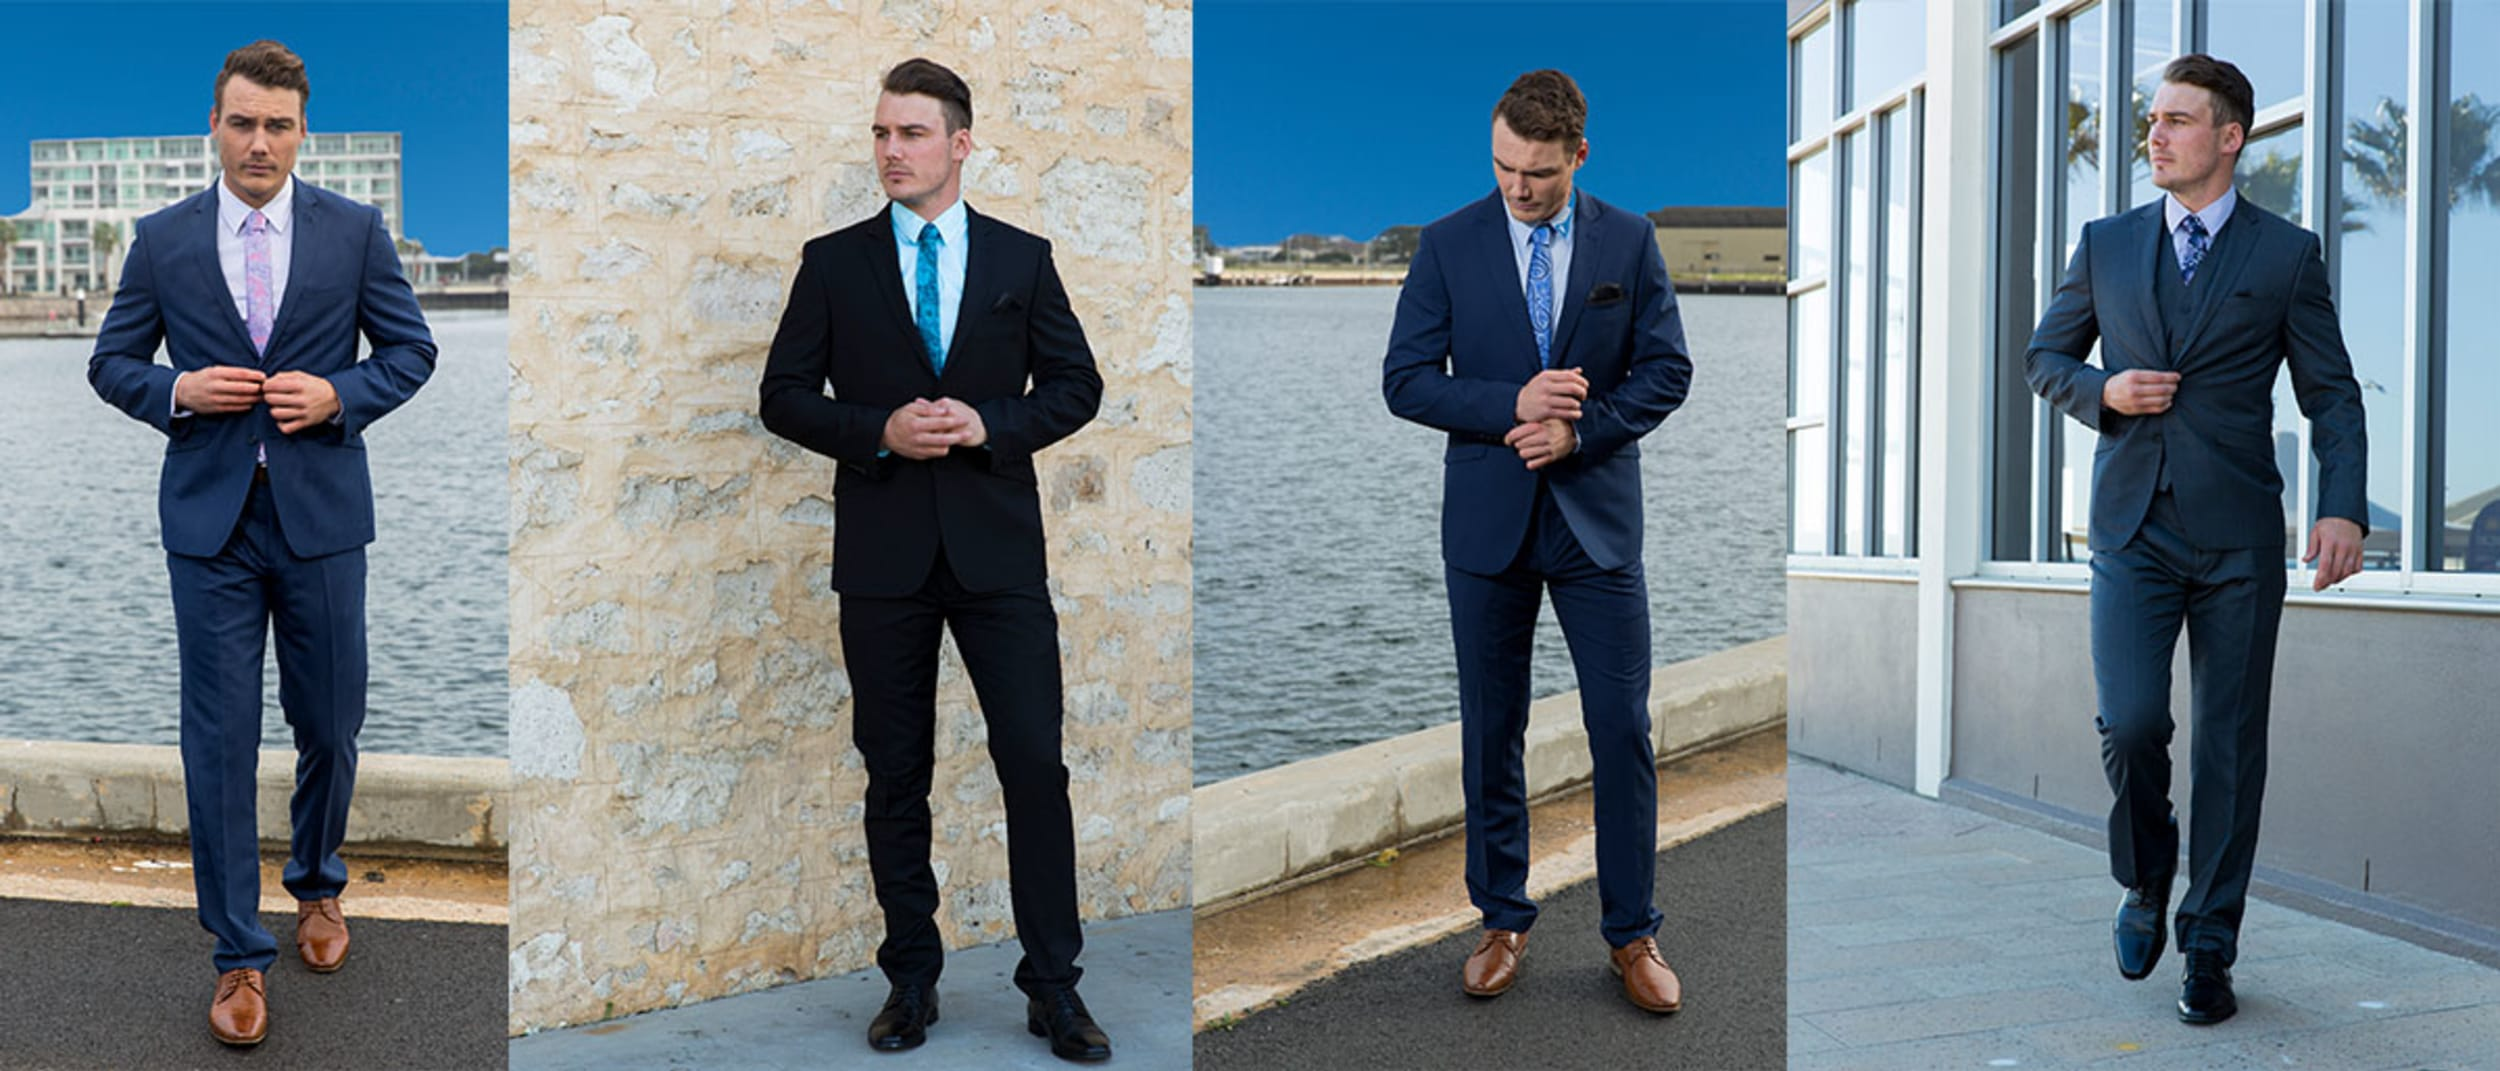 Ed Harry: 2pc suits half price $129.98